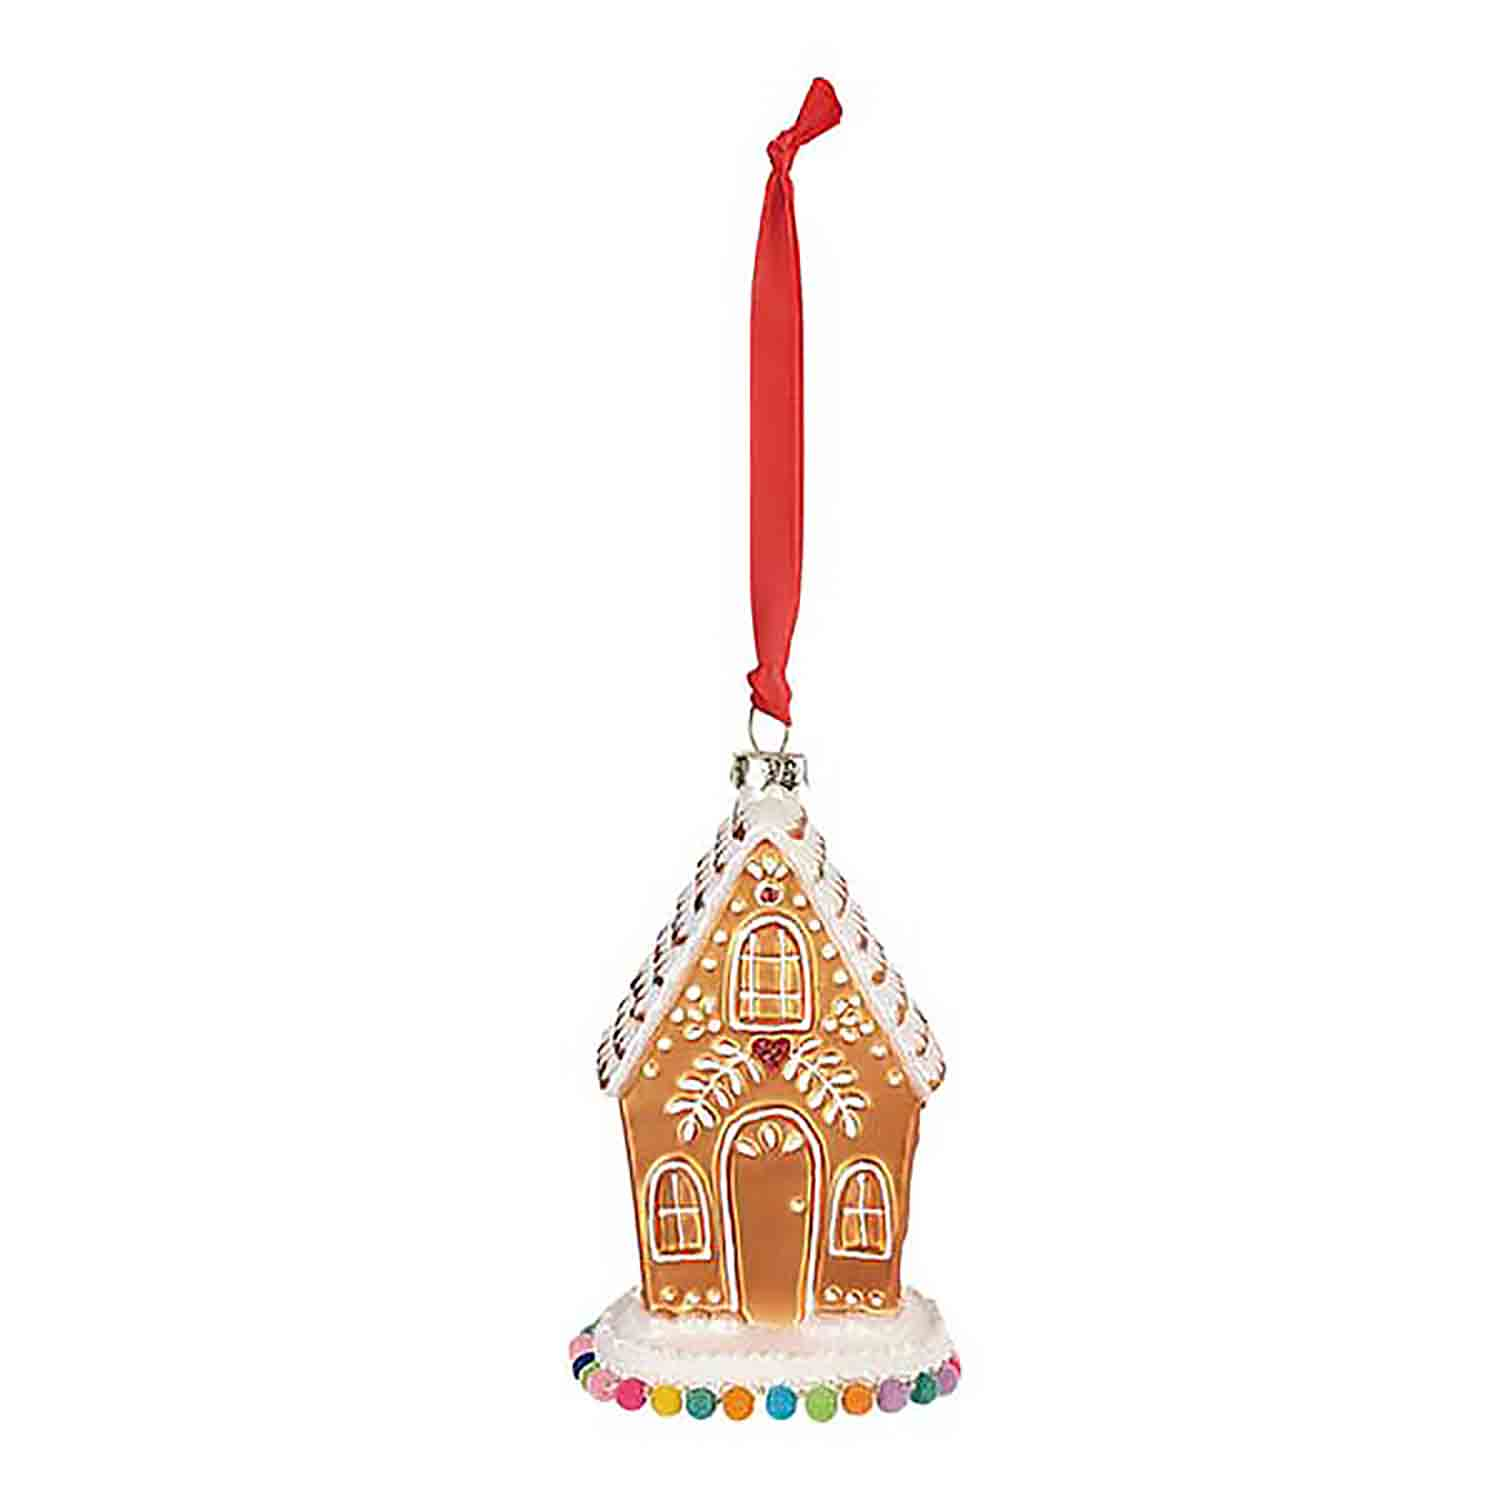 Gingerbread House Blown Glass Ornament